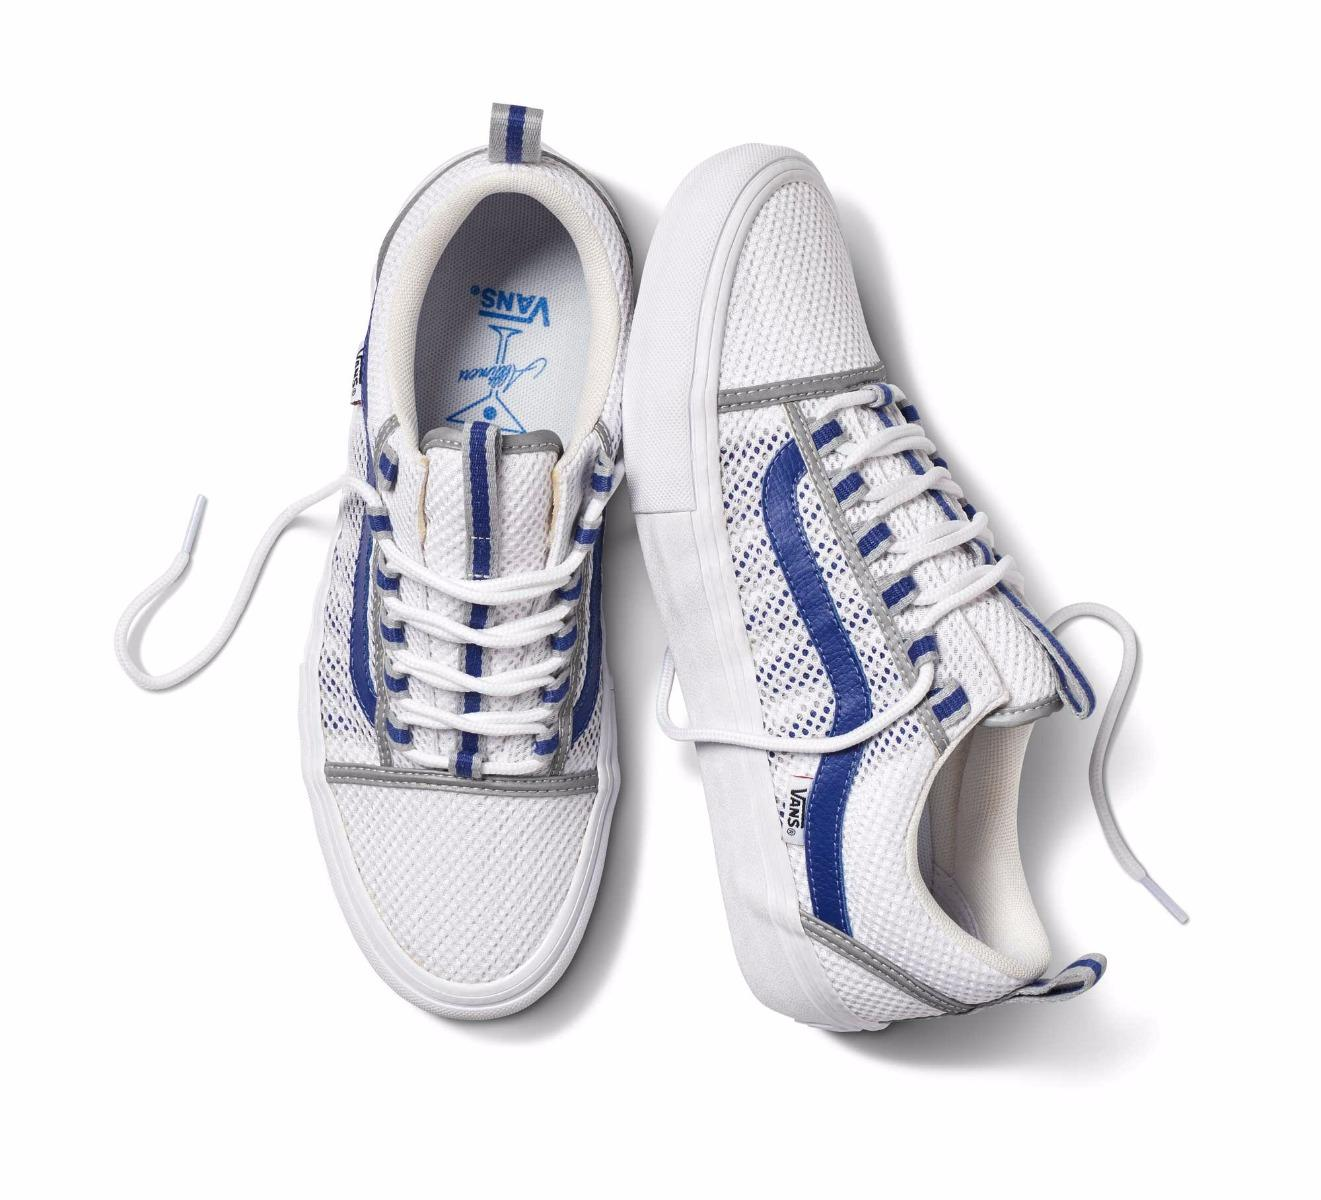 57503bc89d399b Vans and Alltimers Bring Space-Age Vision to the Old Skool Sport Pro ...